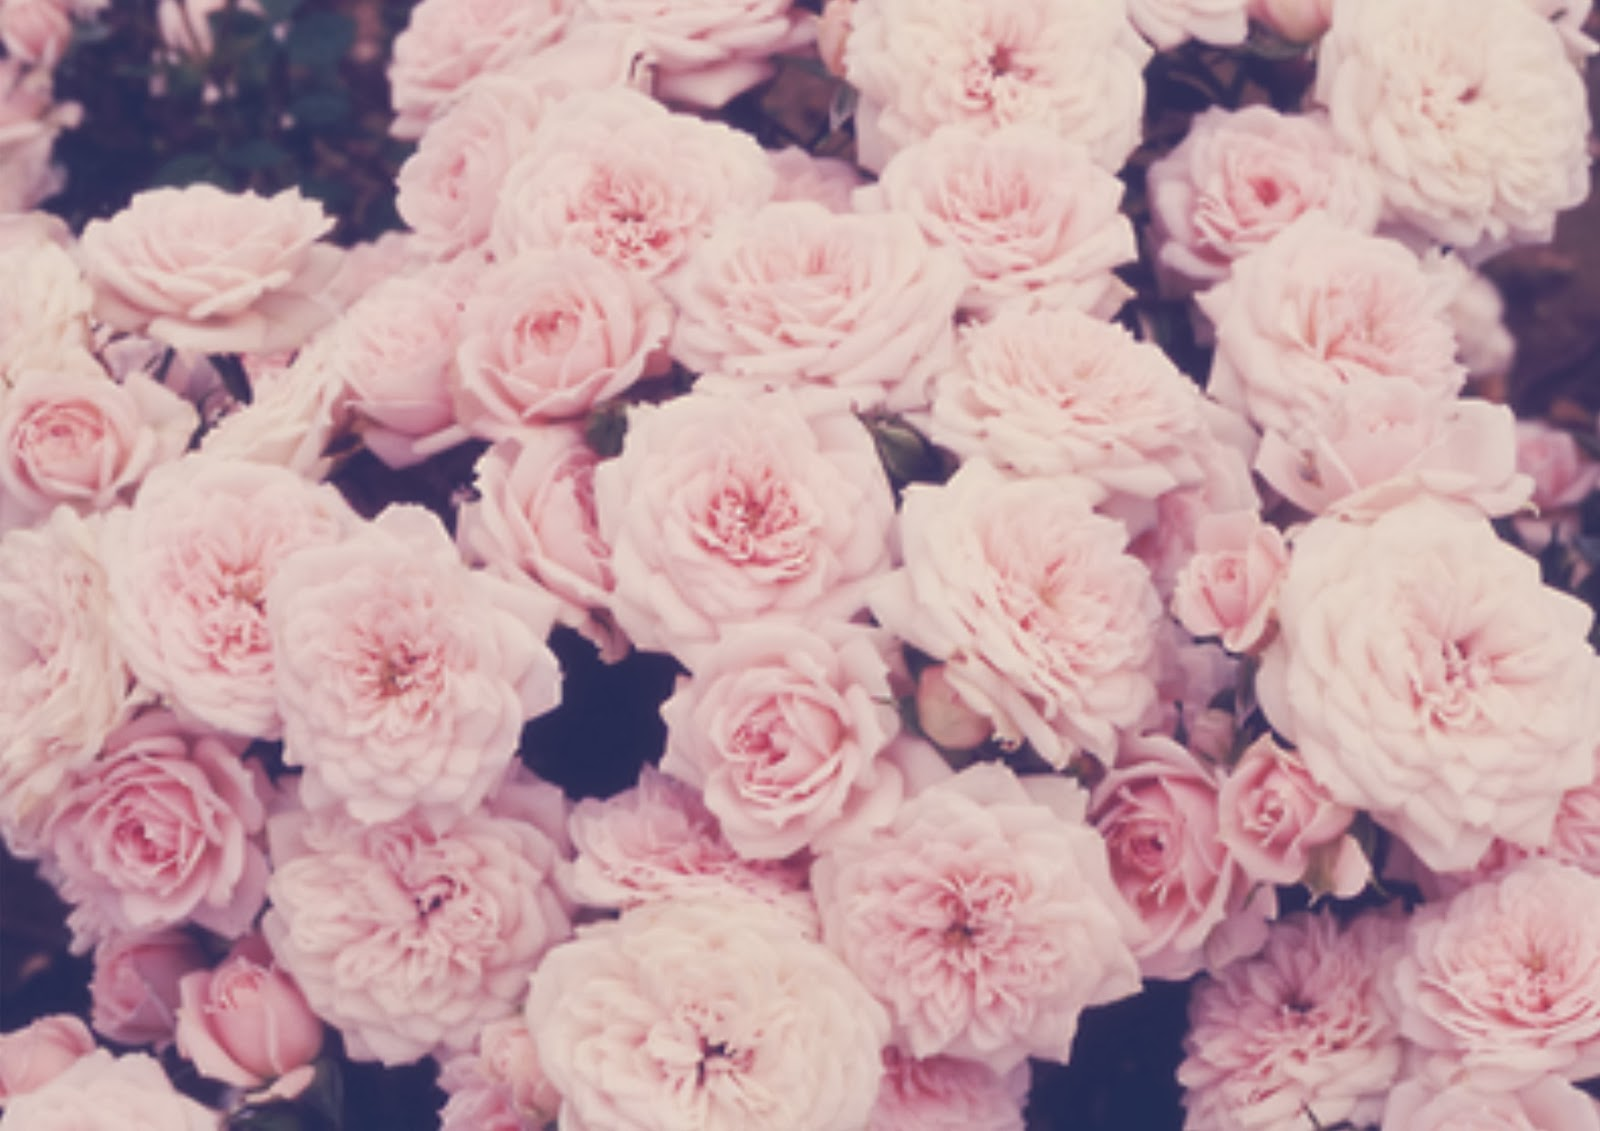 Pink Roses Tumblr Quotes Pink roses than red ones 1600x1131